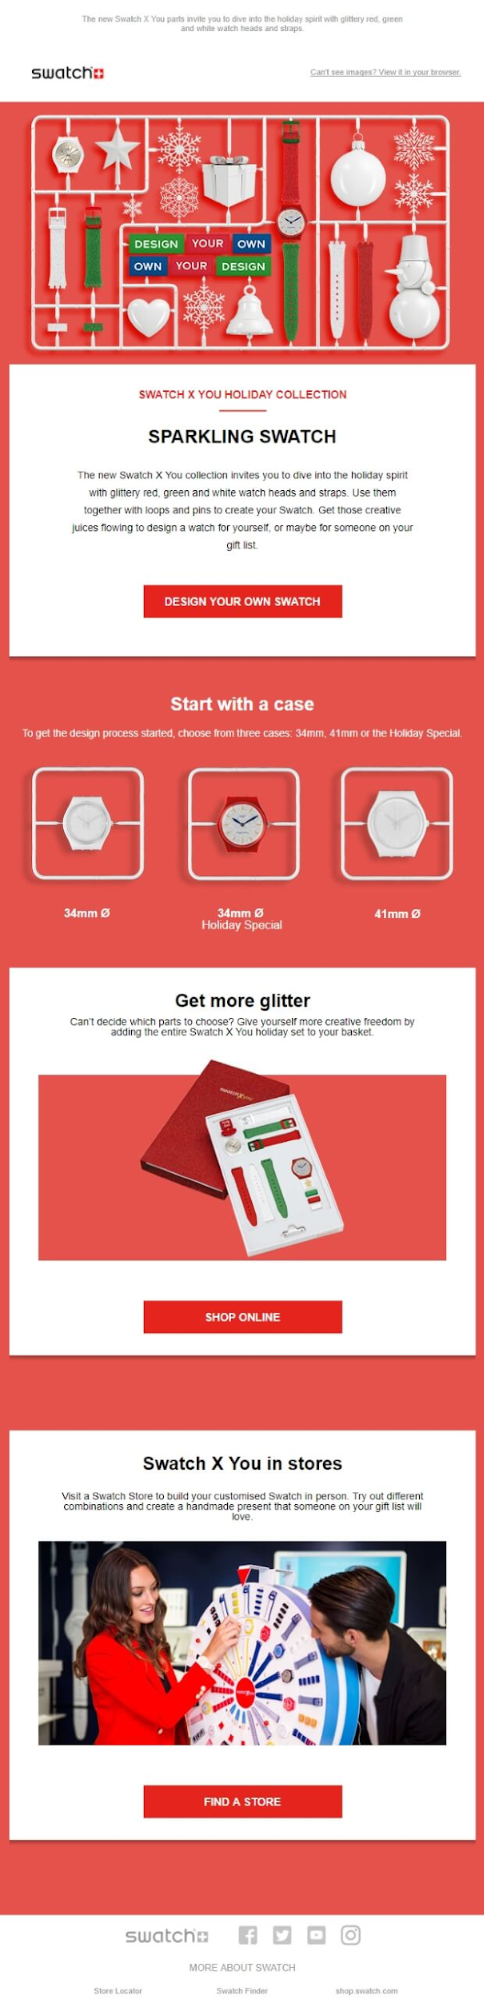 Swatch holiday email marketing